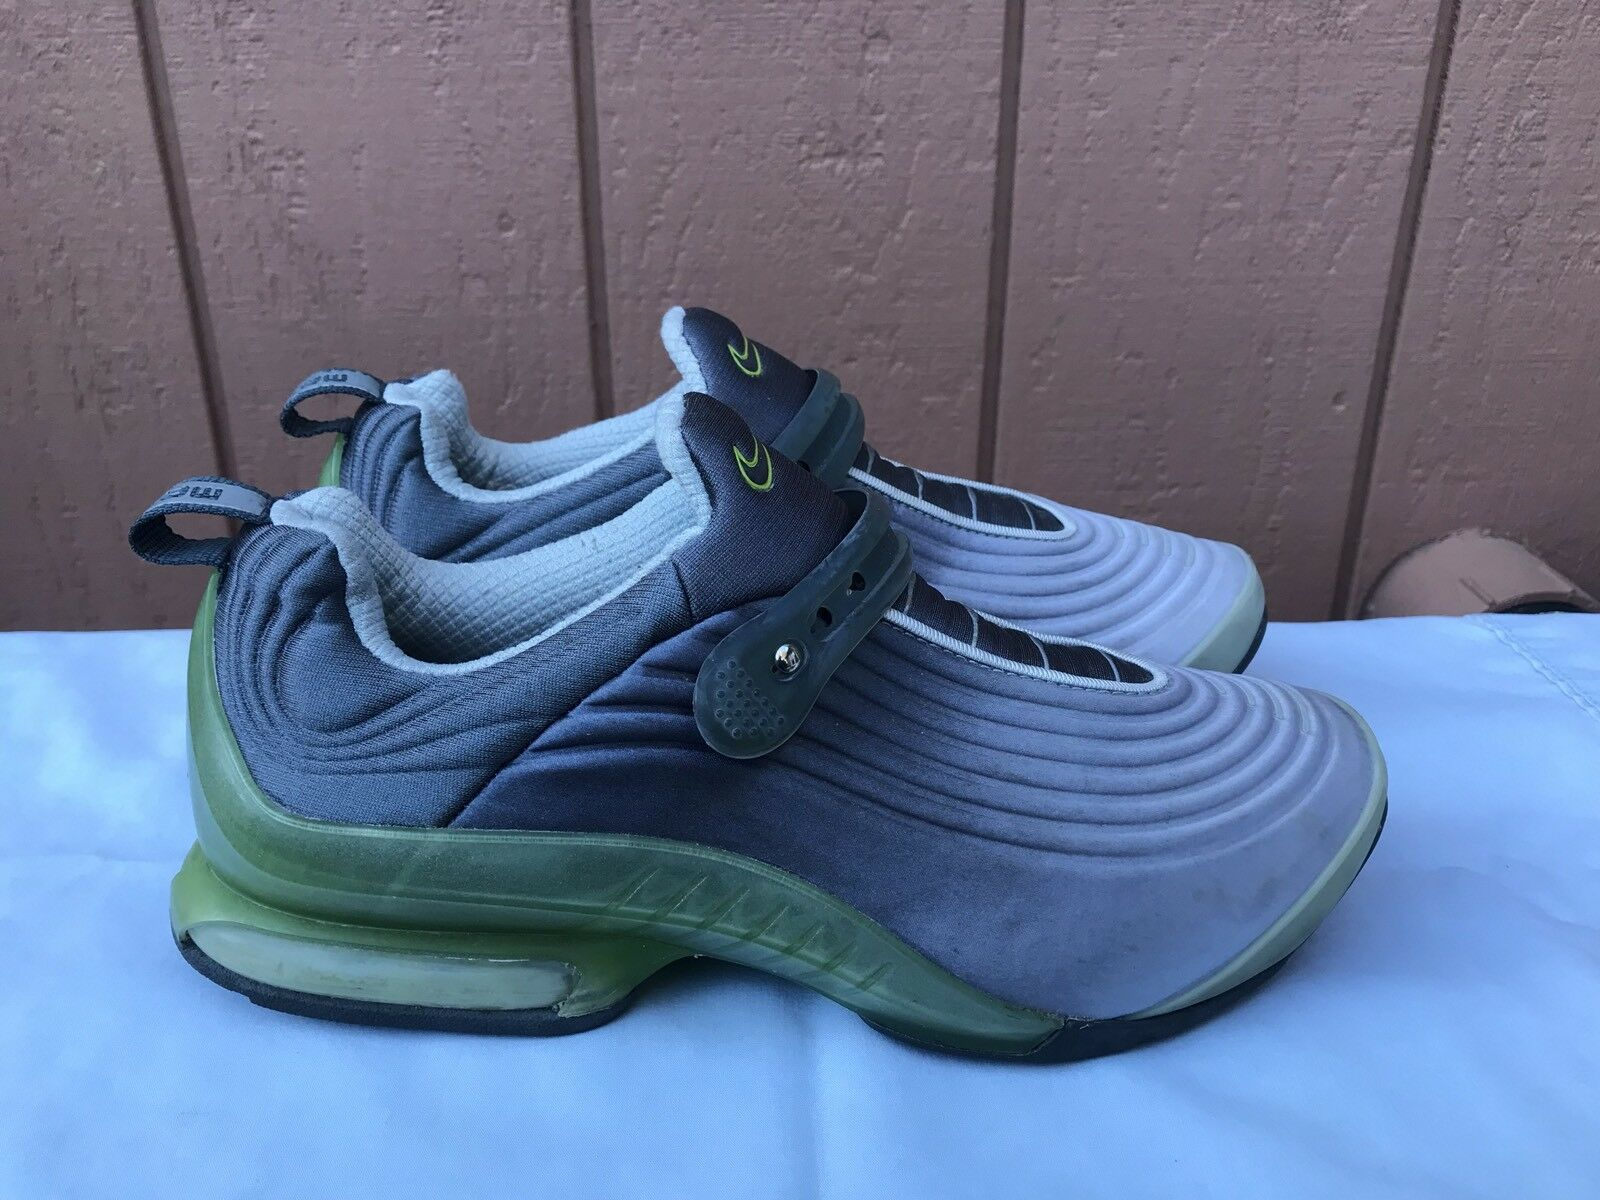 EUC RARE Nike Women's US 9.5 Air Max SPECTER Gray Running Shoes  A2